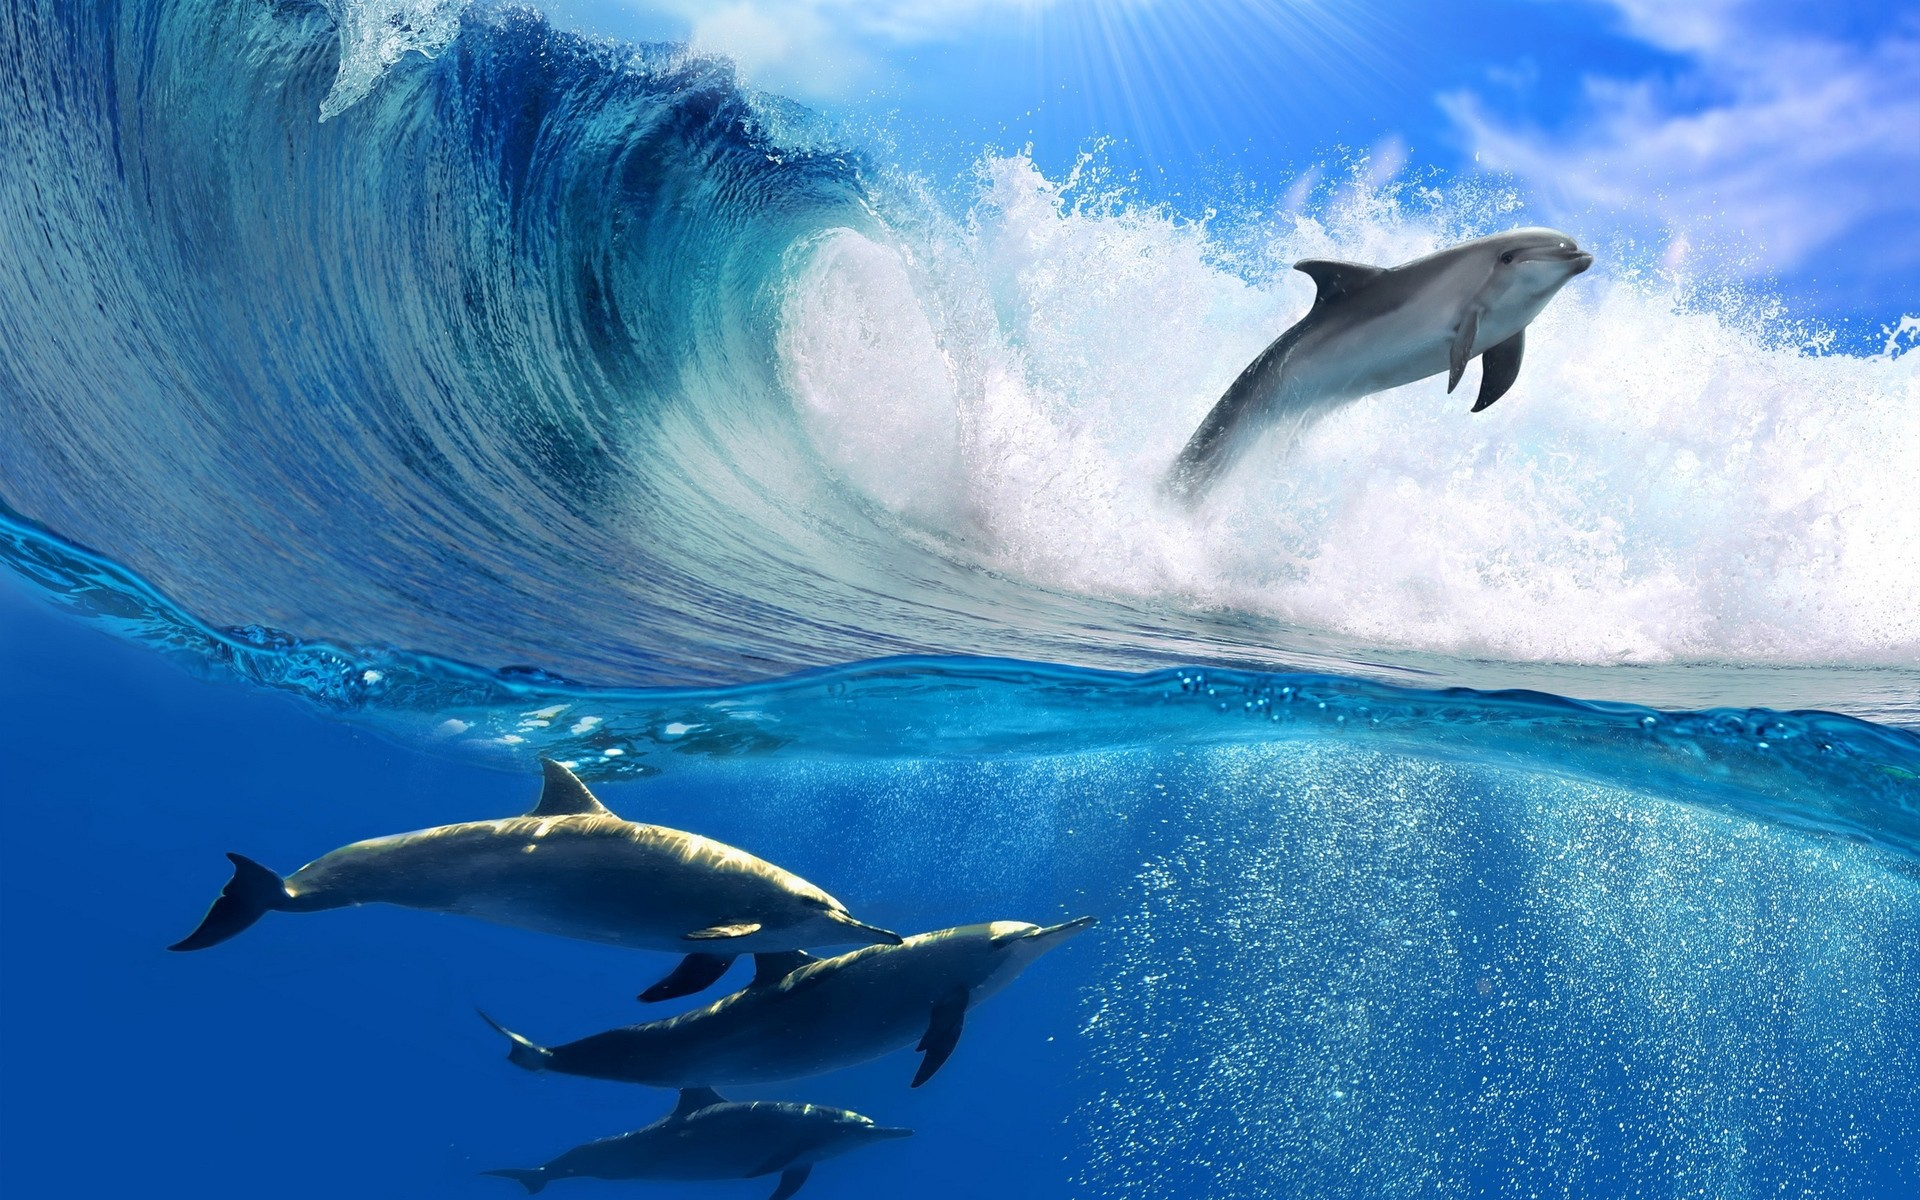 Dolphin Jumping Through Wave